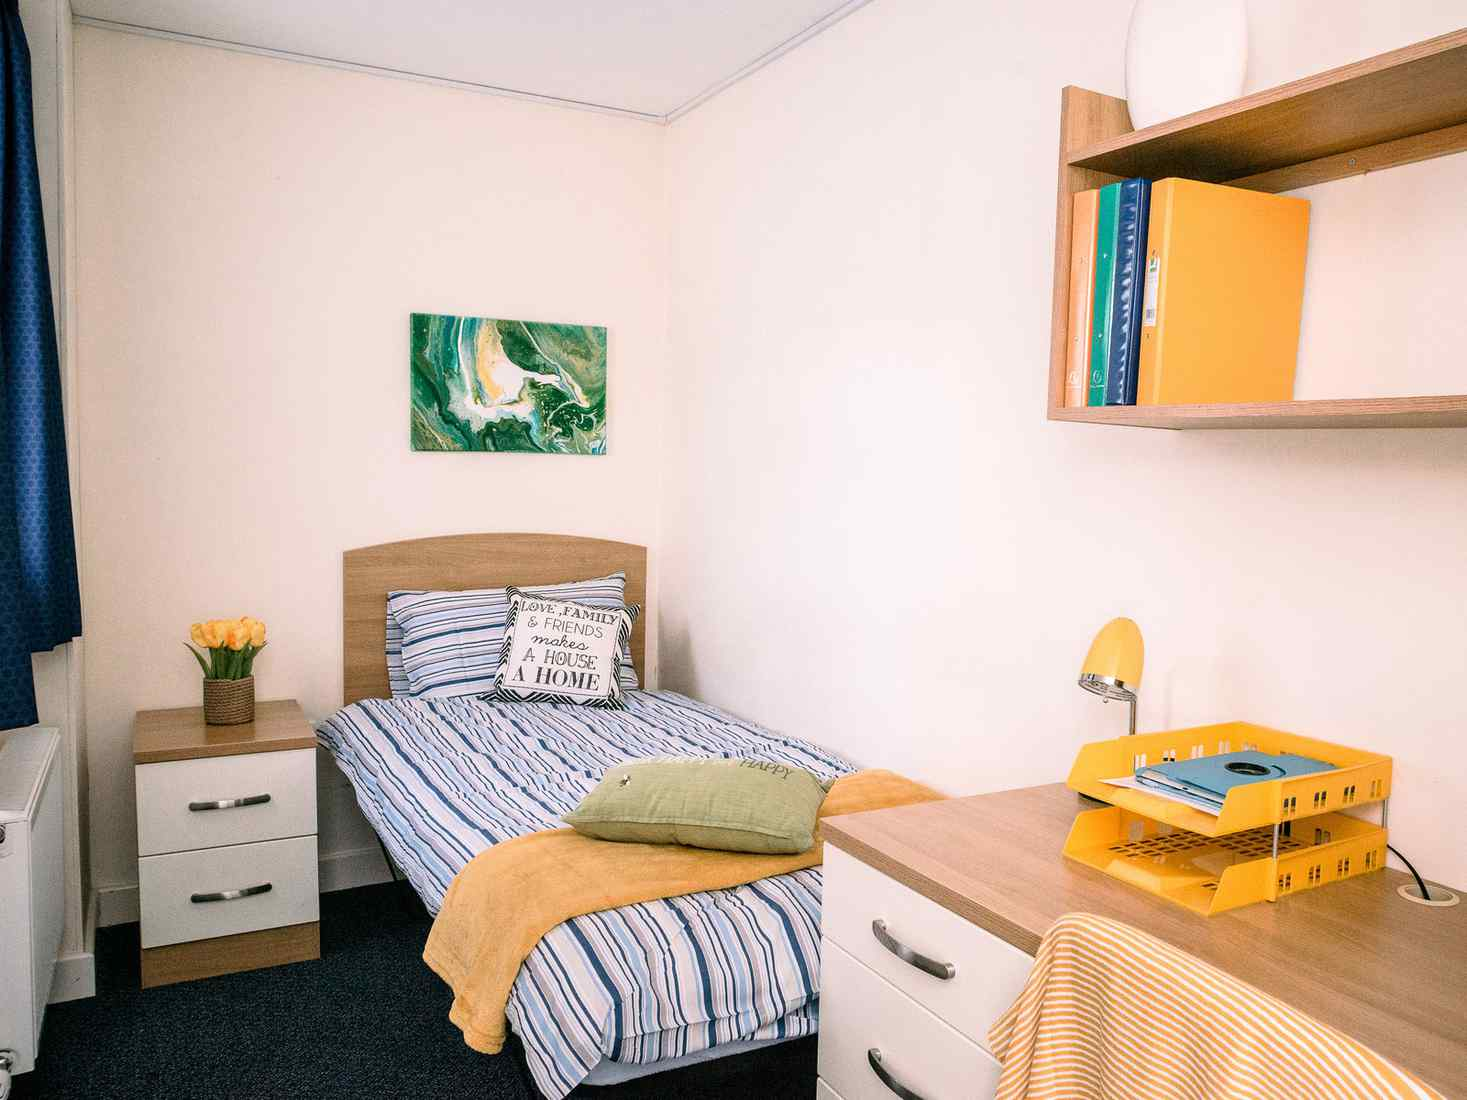 View of Garden Street room, with a single bed, drawers, desk and shelving.